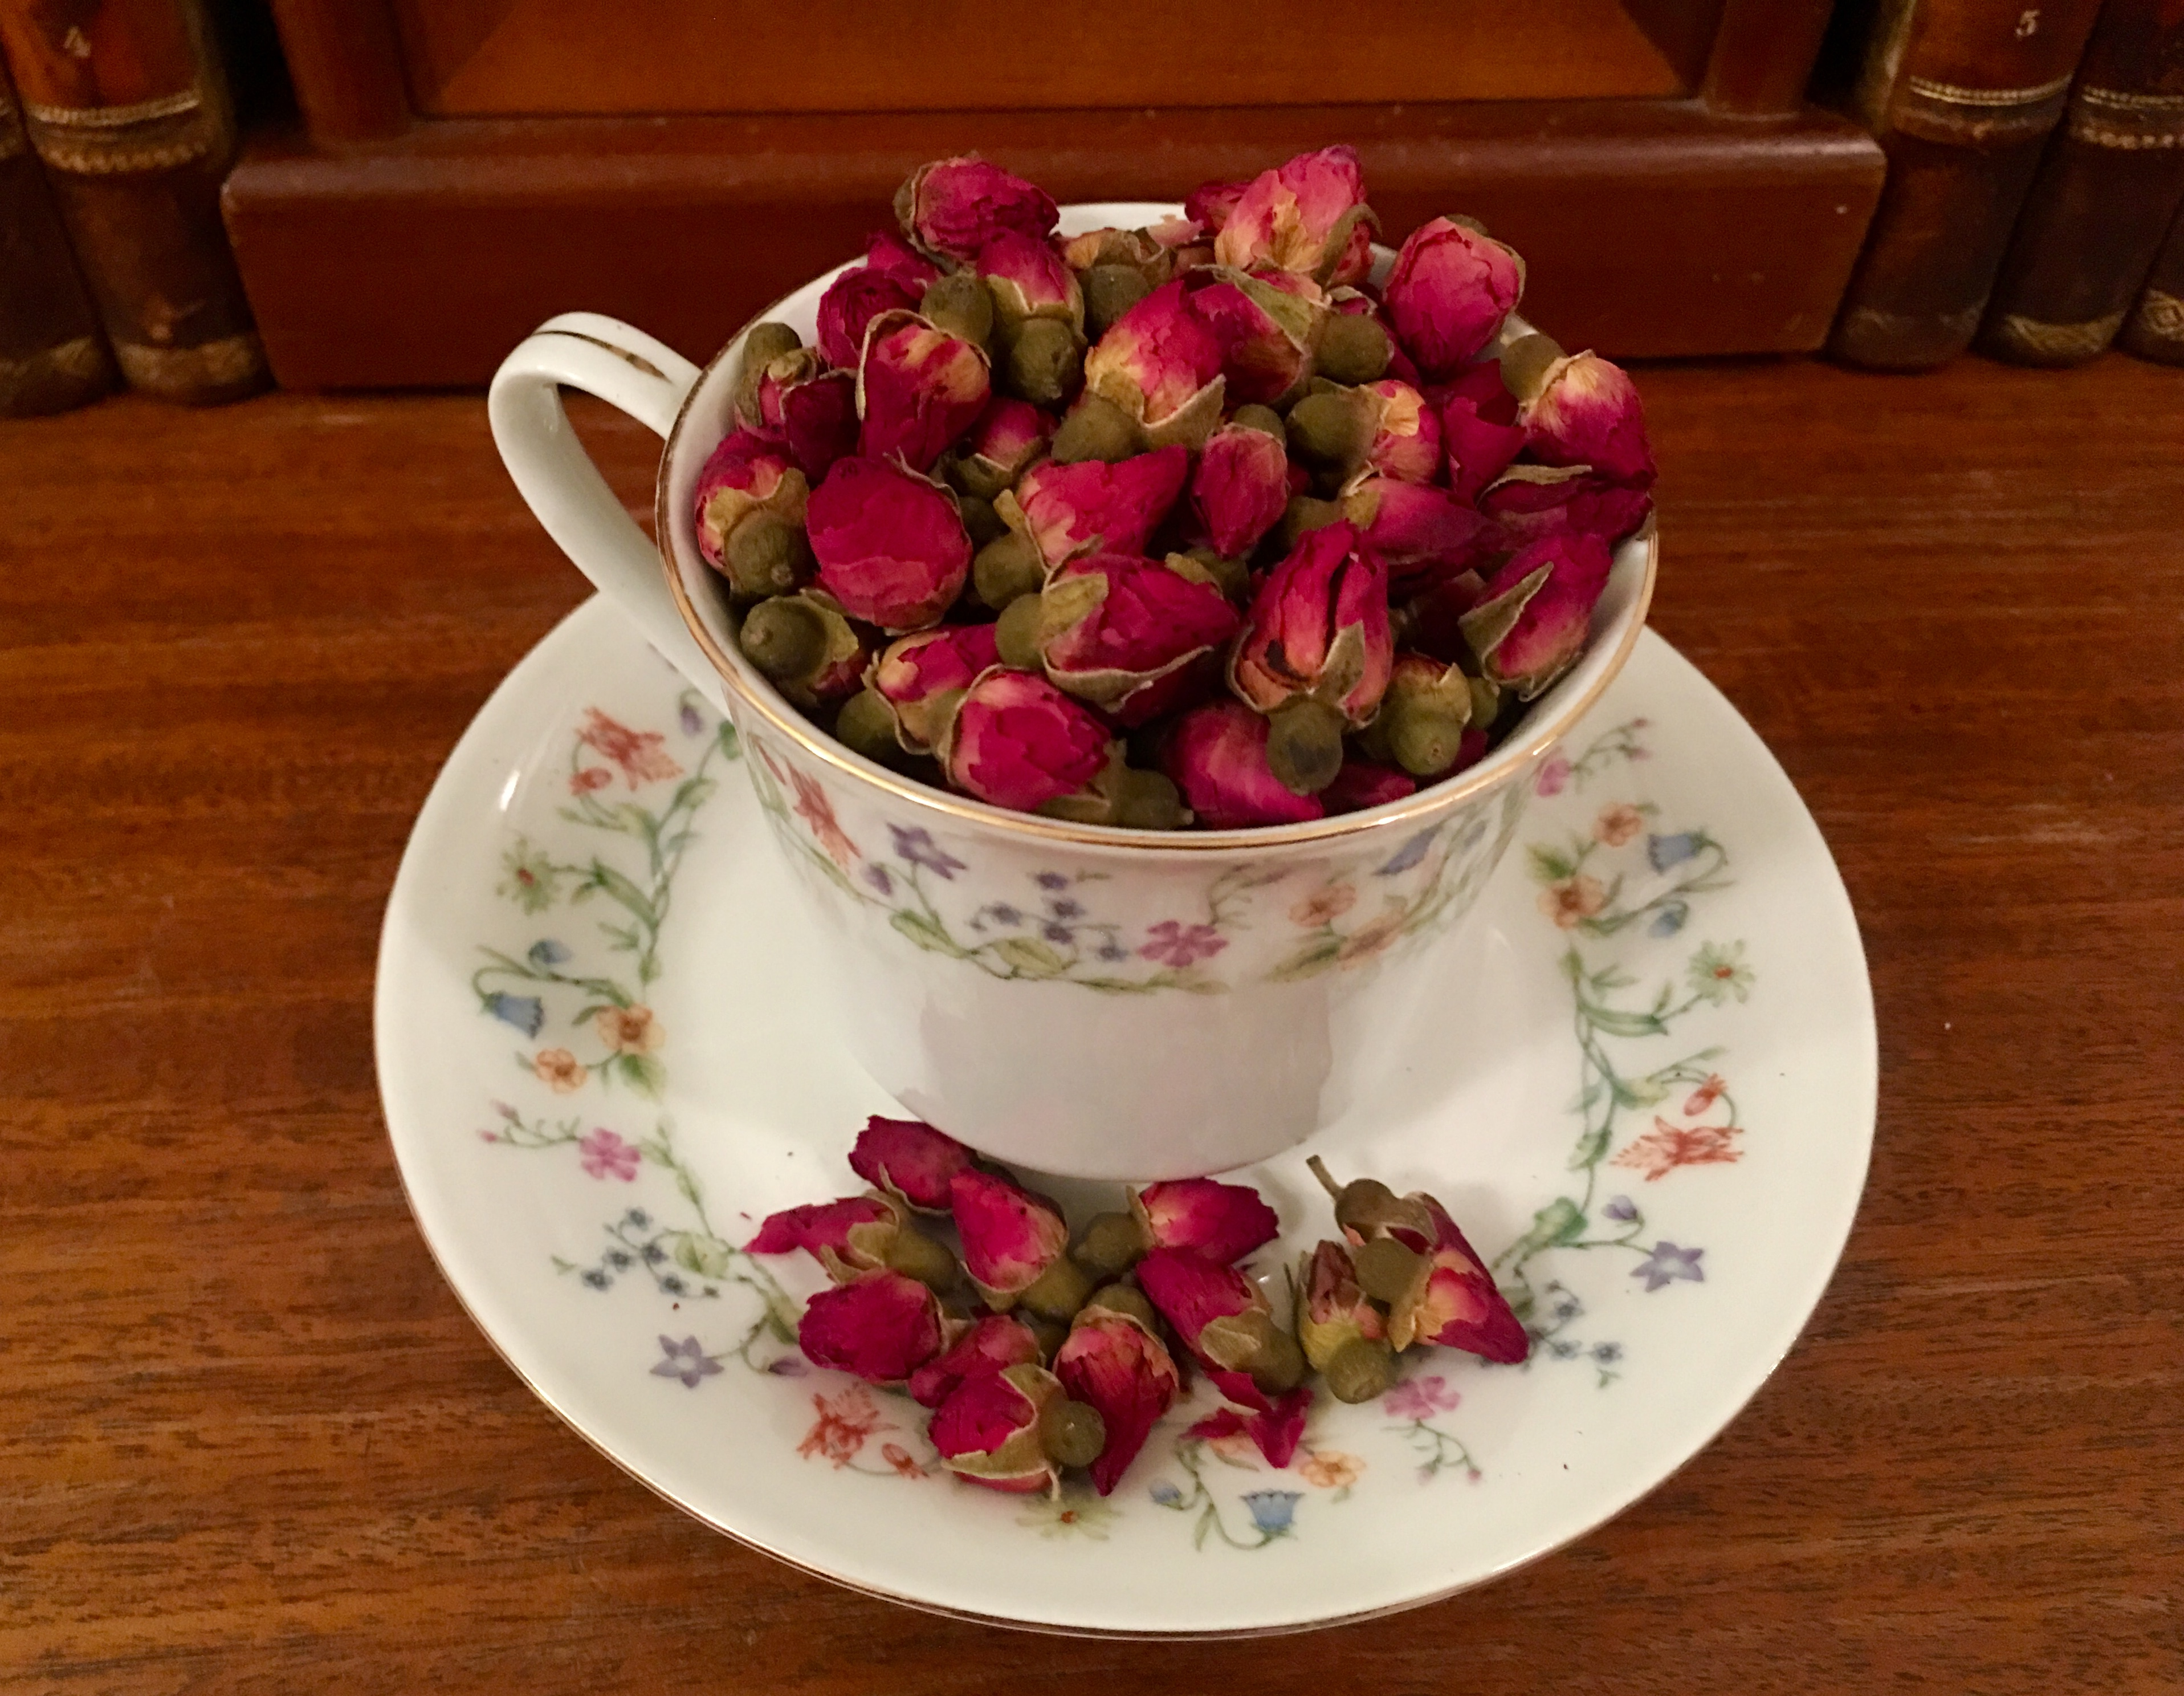 You can buy rose petals at Ten Ren if you want to drink tea with no caffeine. Eagle photo by Lore Croghan